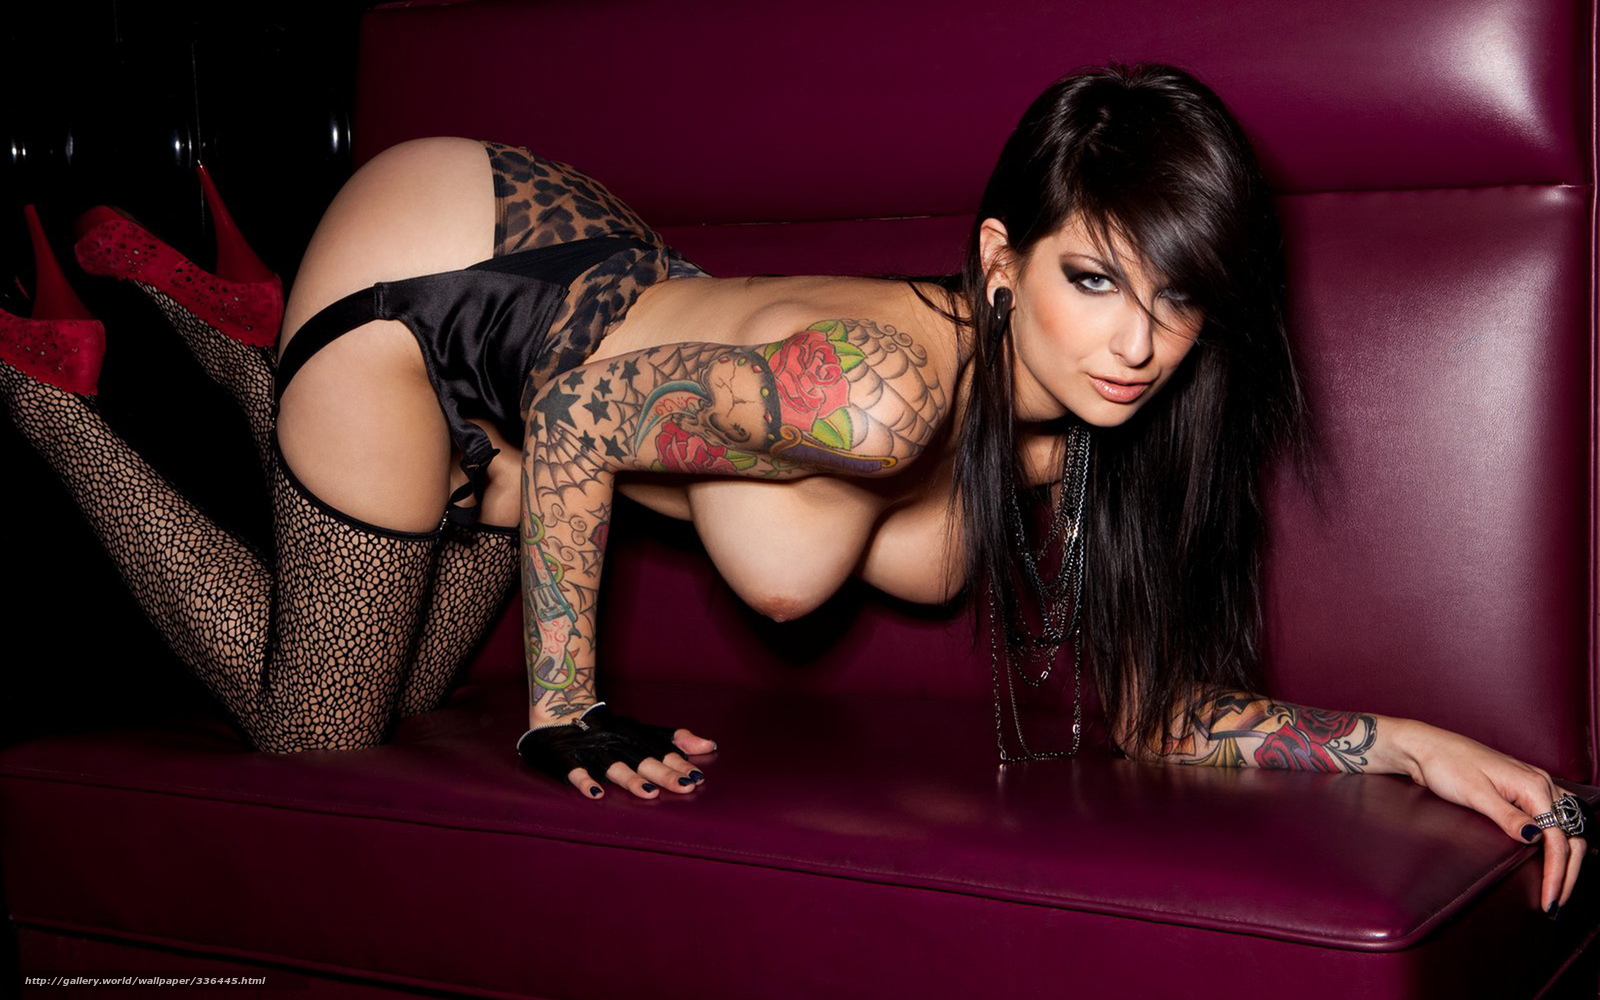 Pic clubstunning brunette pics porn pictures